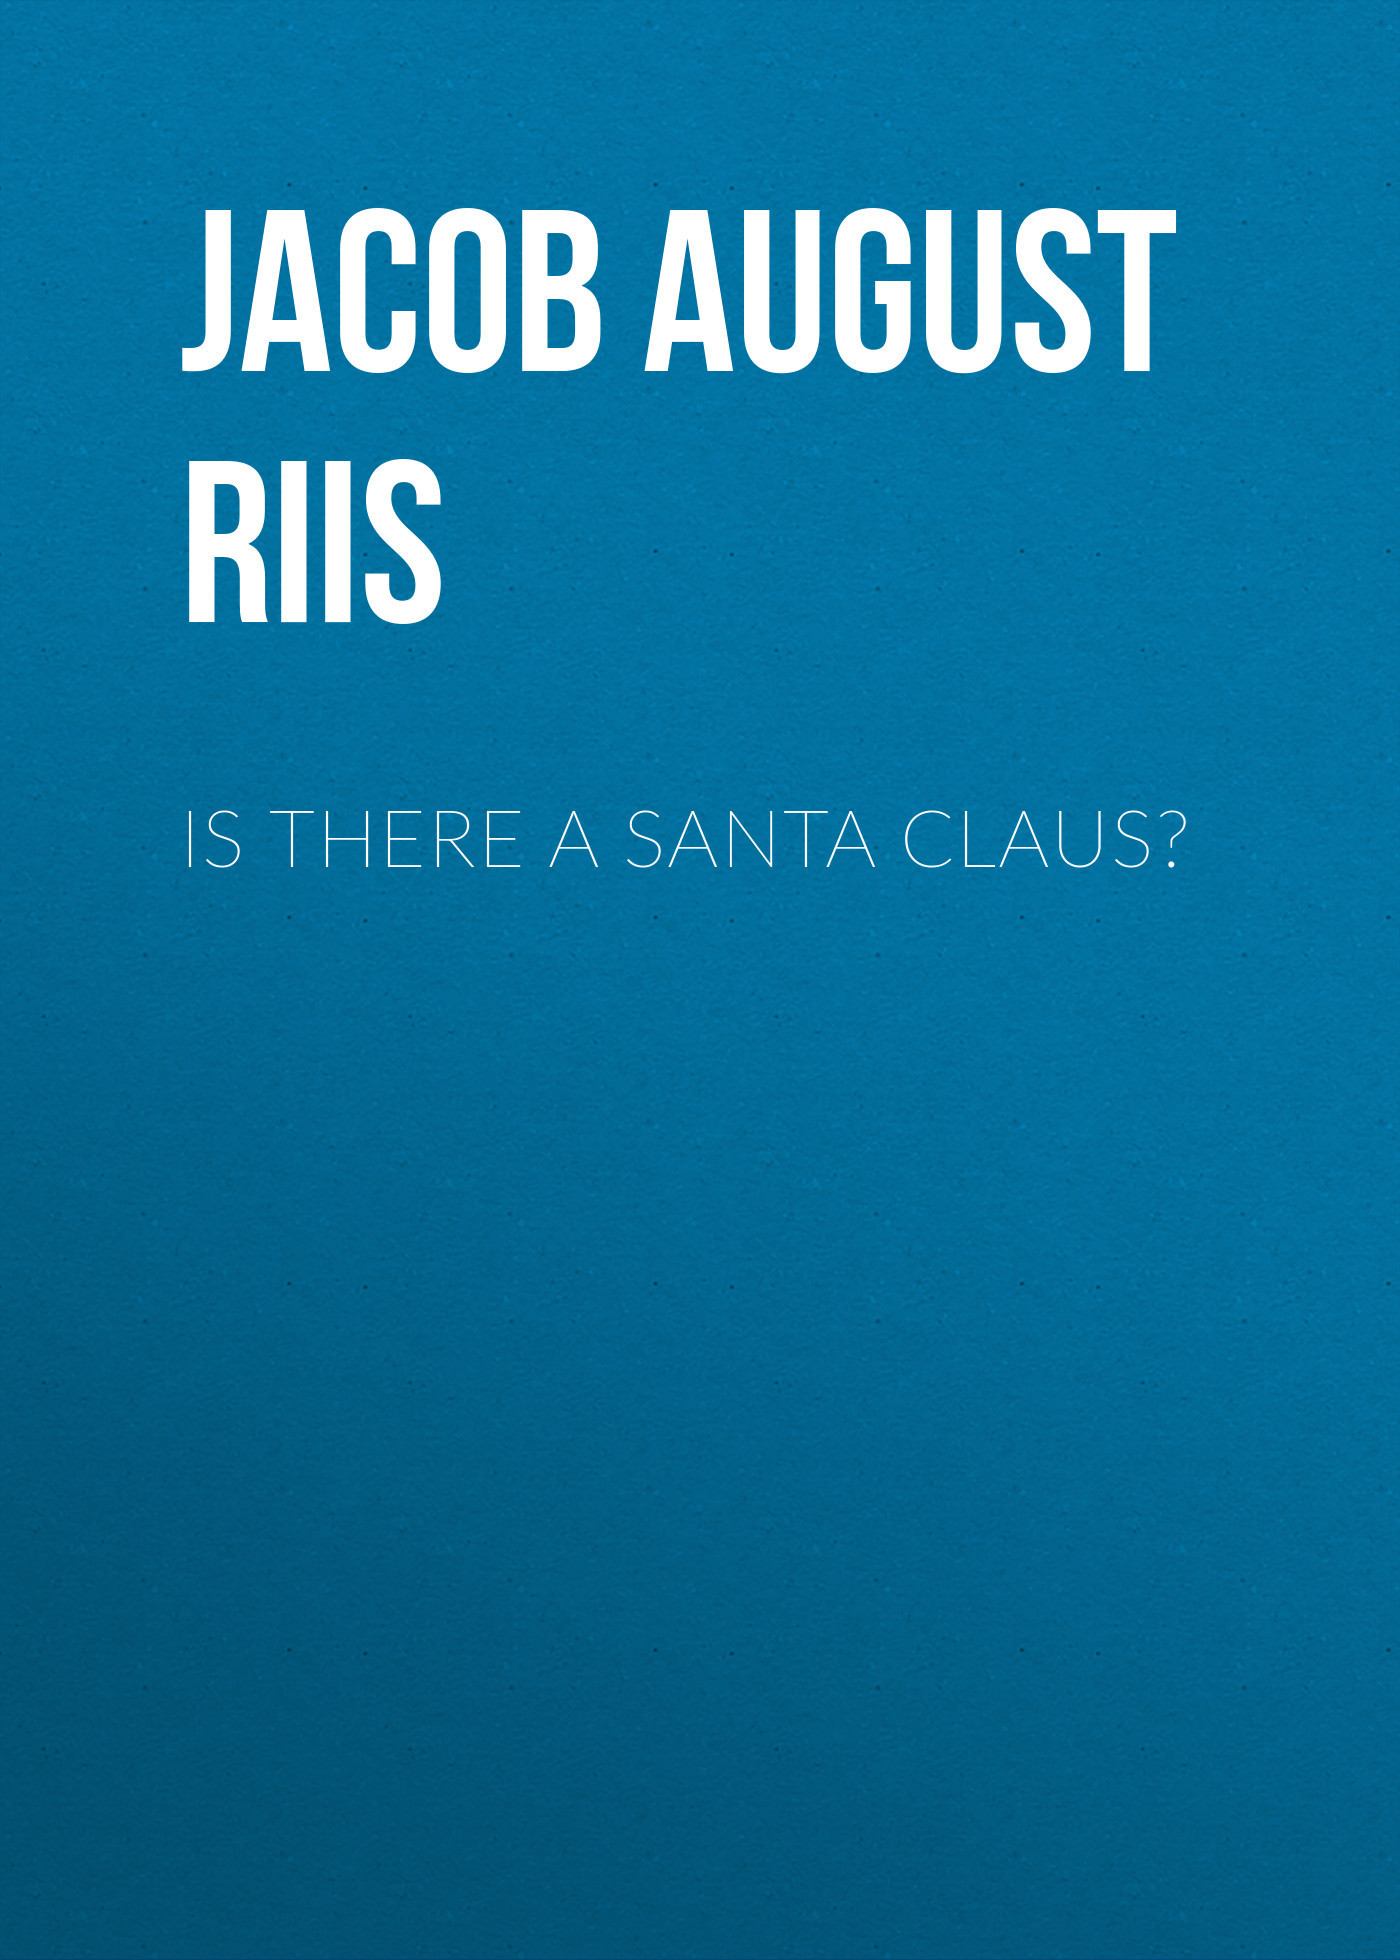 Jacob August Riis Is There a Santa Claus? christmas ornaments plush toys santa claus stuffed